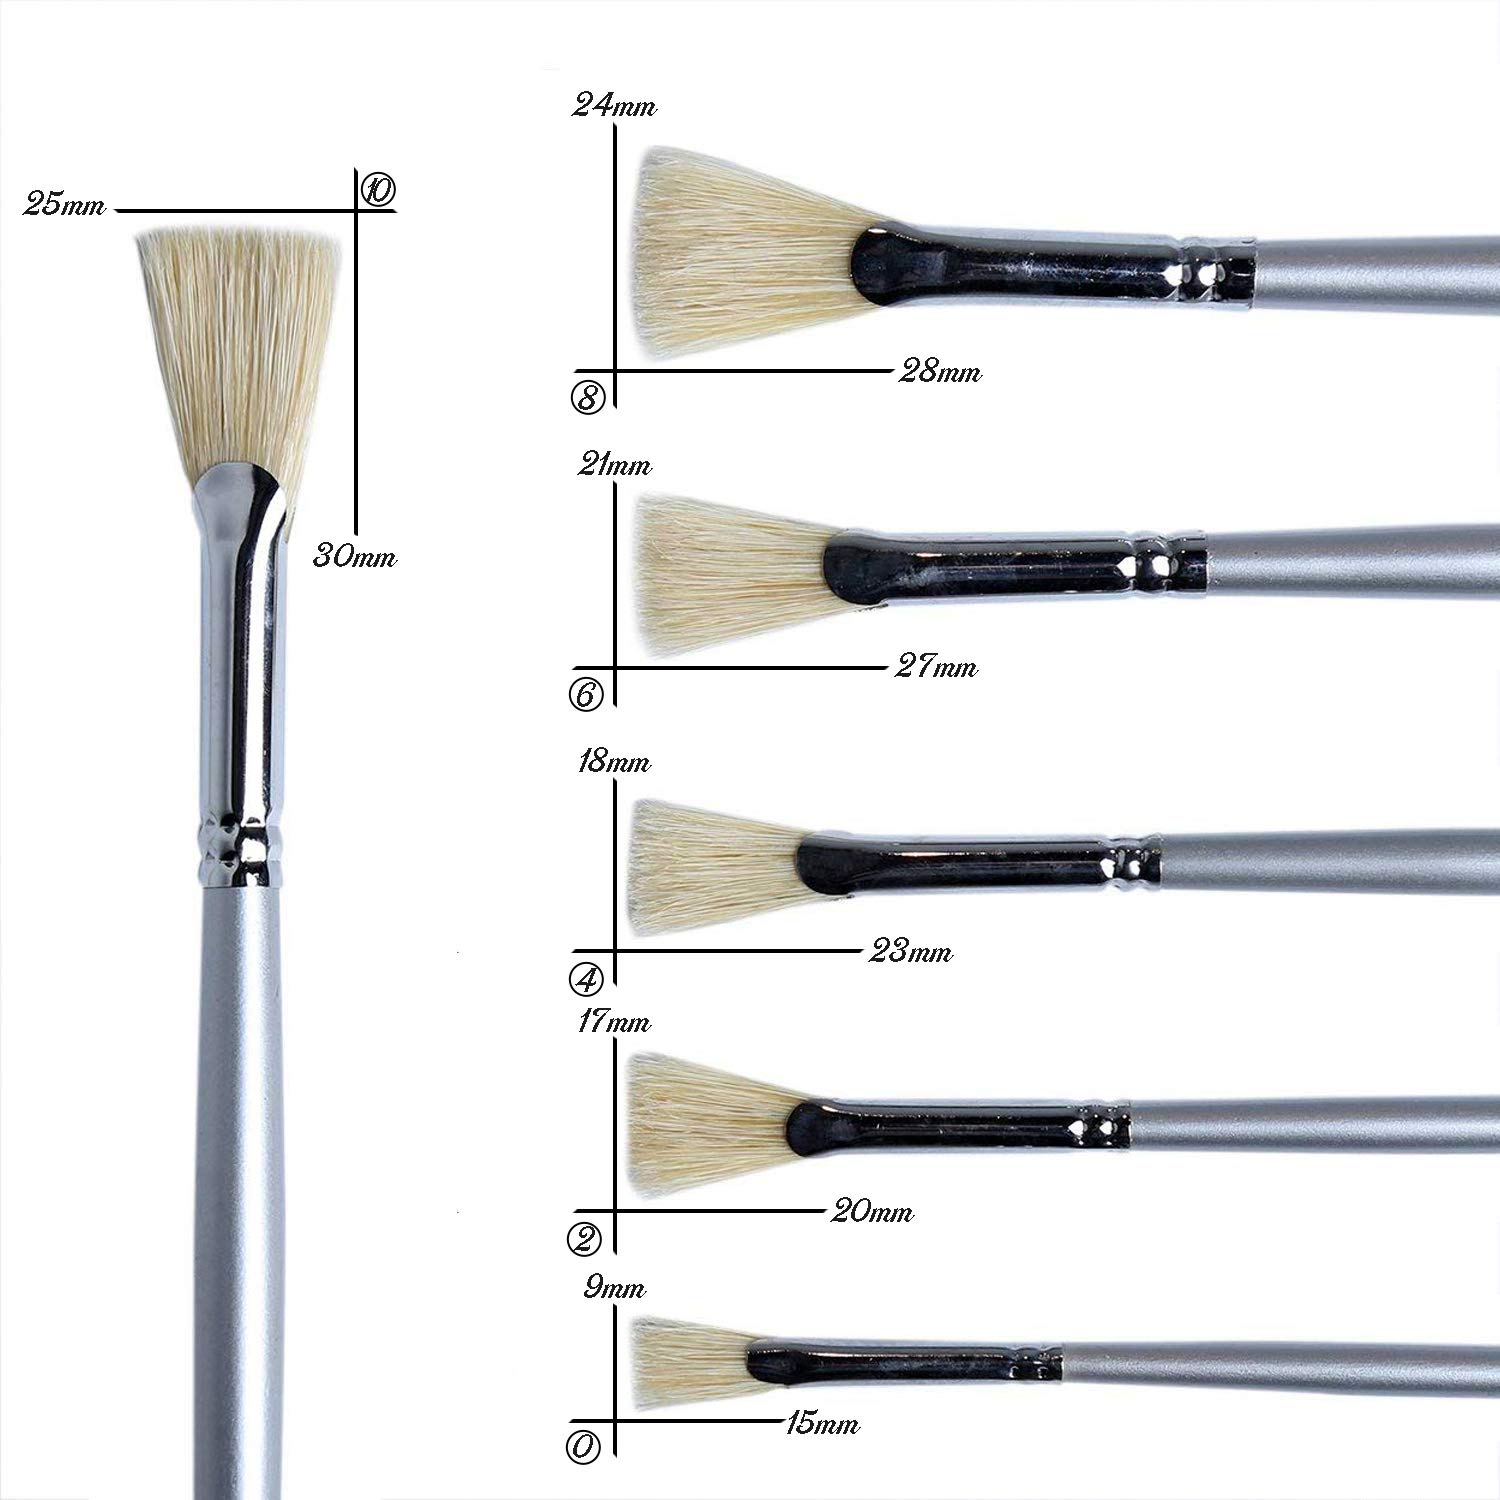 ATWORTH White Hog Bristle Fan Paint Brushes Set Blender for Oil and Acrylic Paints 6PCS